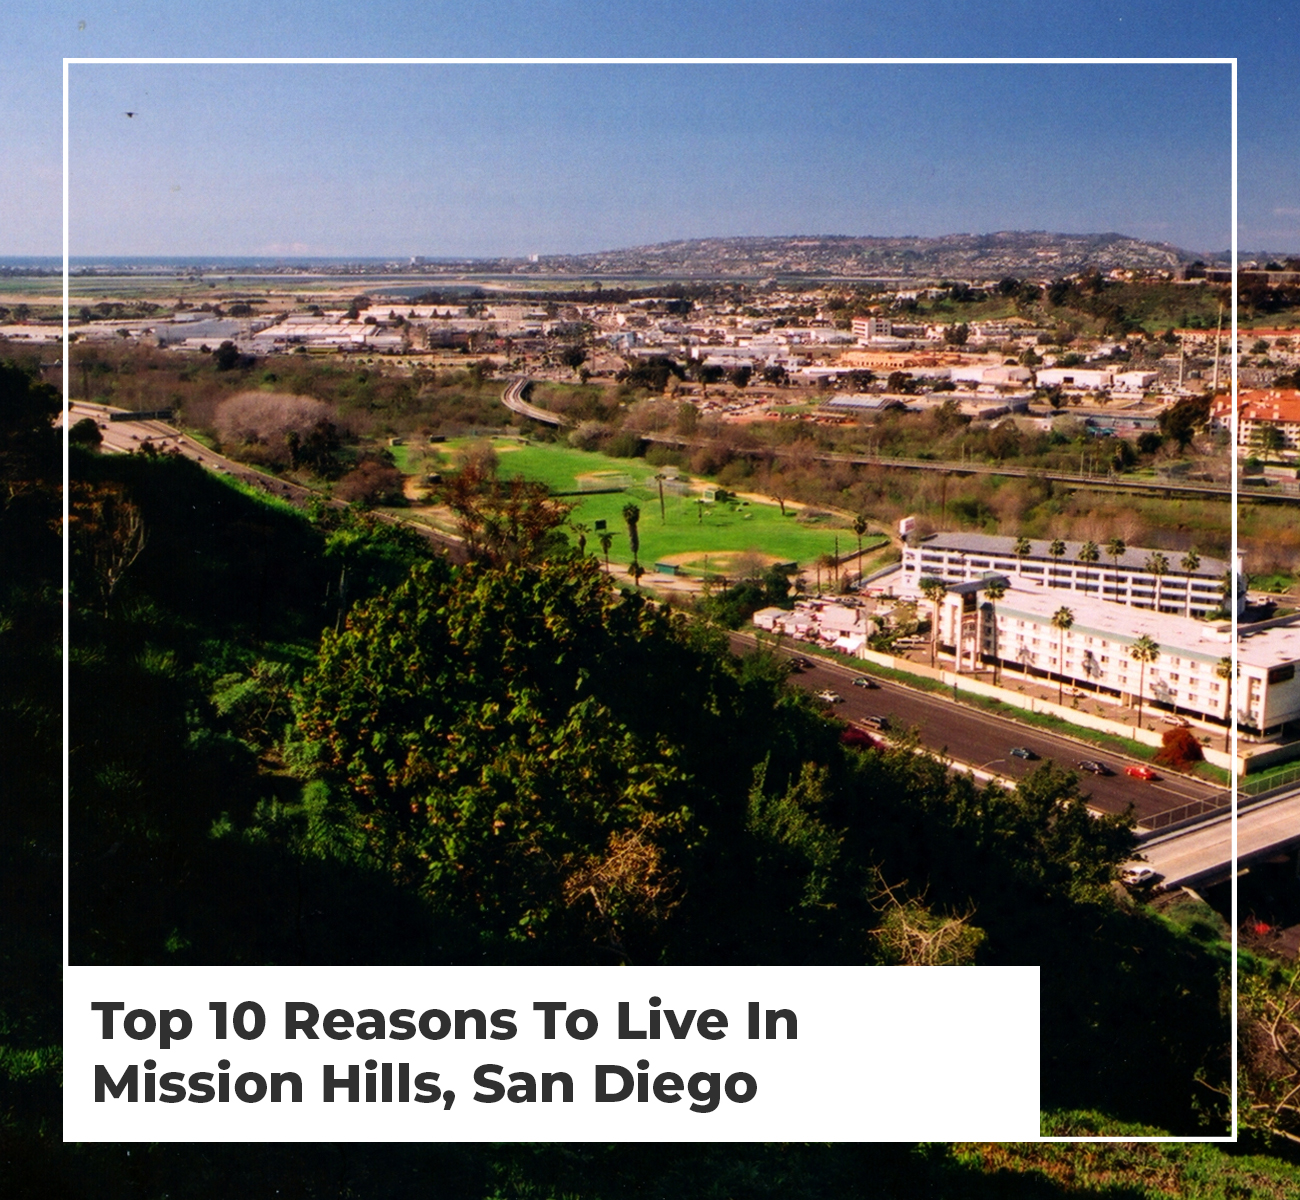 10 Reasons to Live in Mission Hills